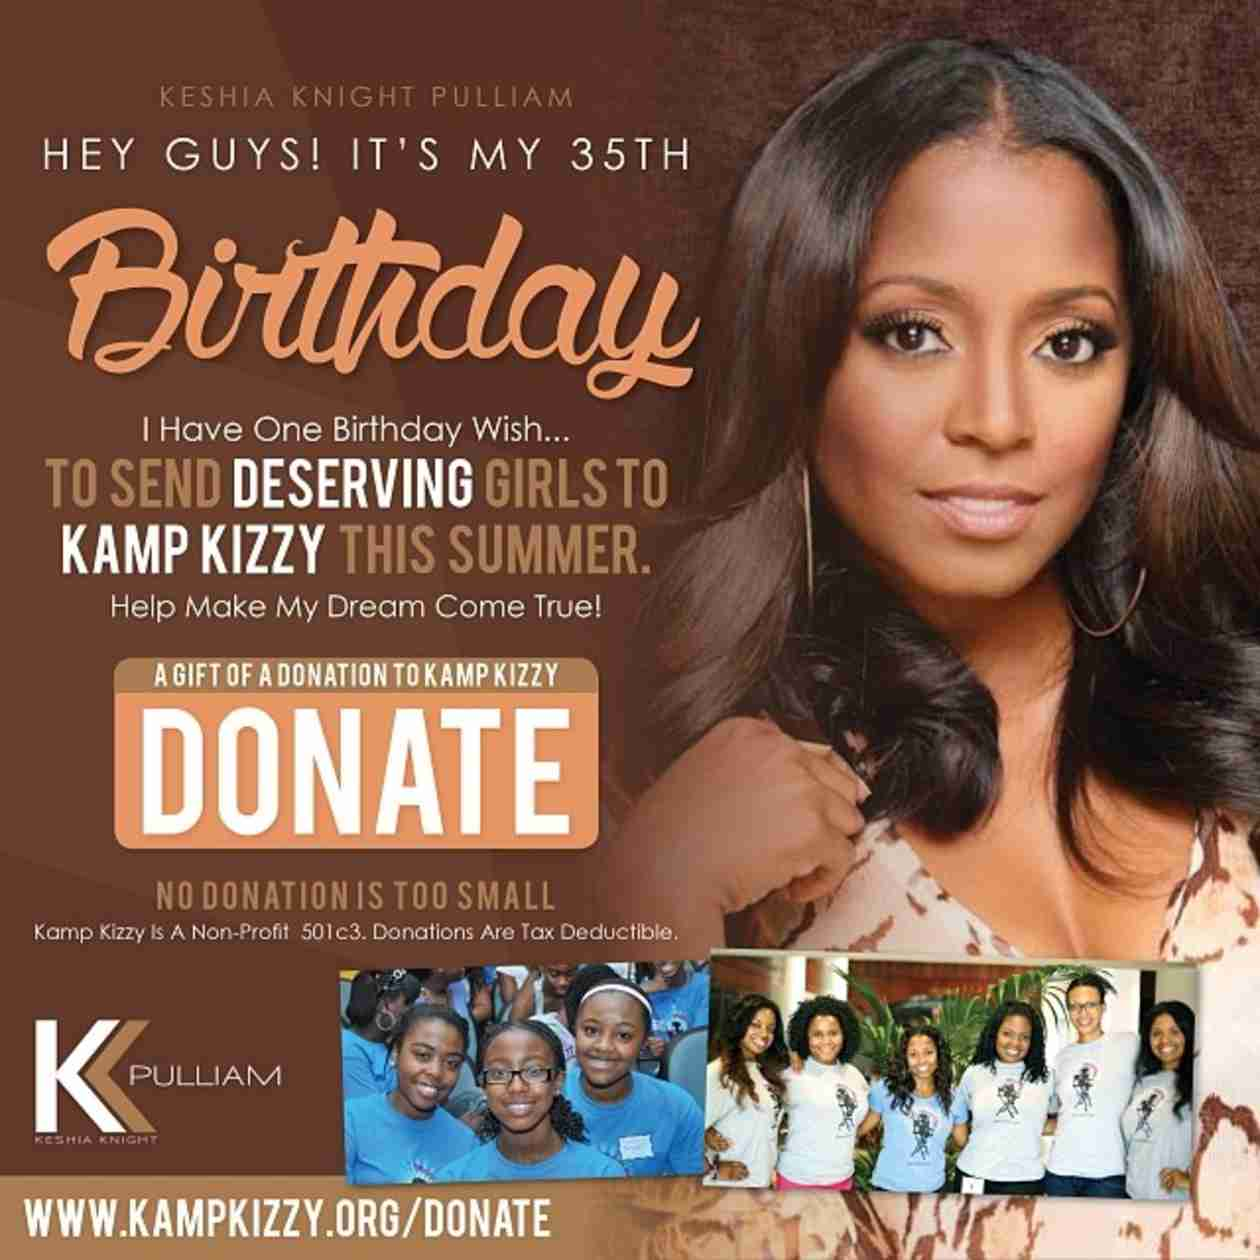 The Cosby Show Star Keshia Knight Pulliam Turns 35 Today! (PHOTO)